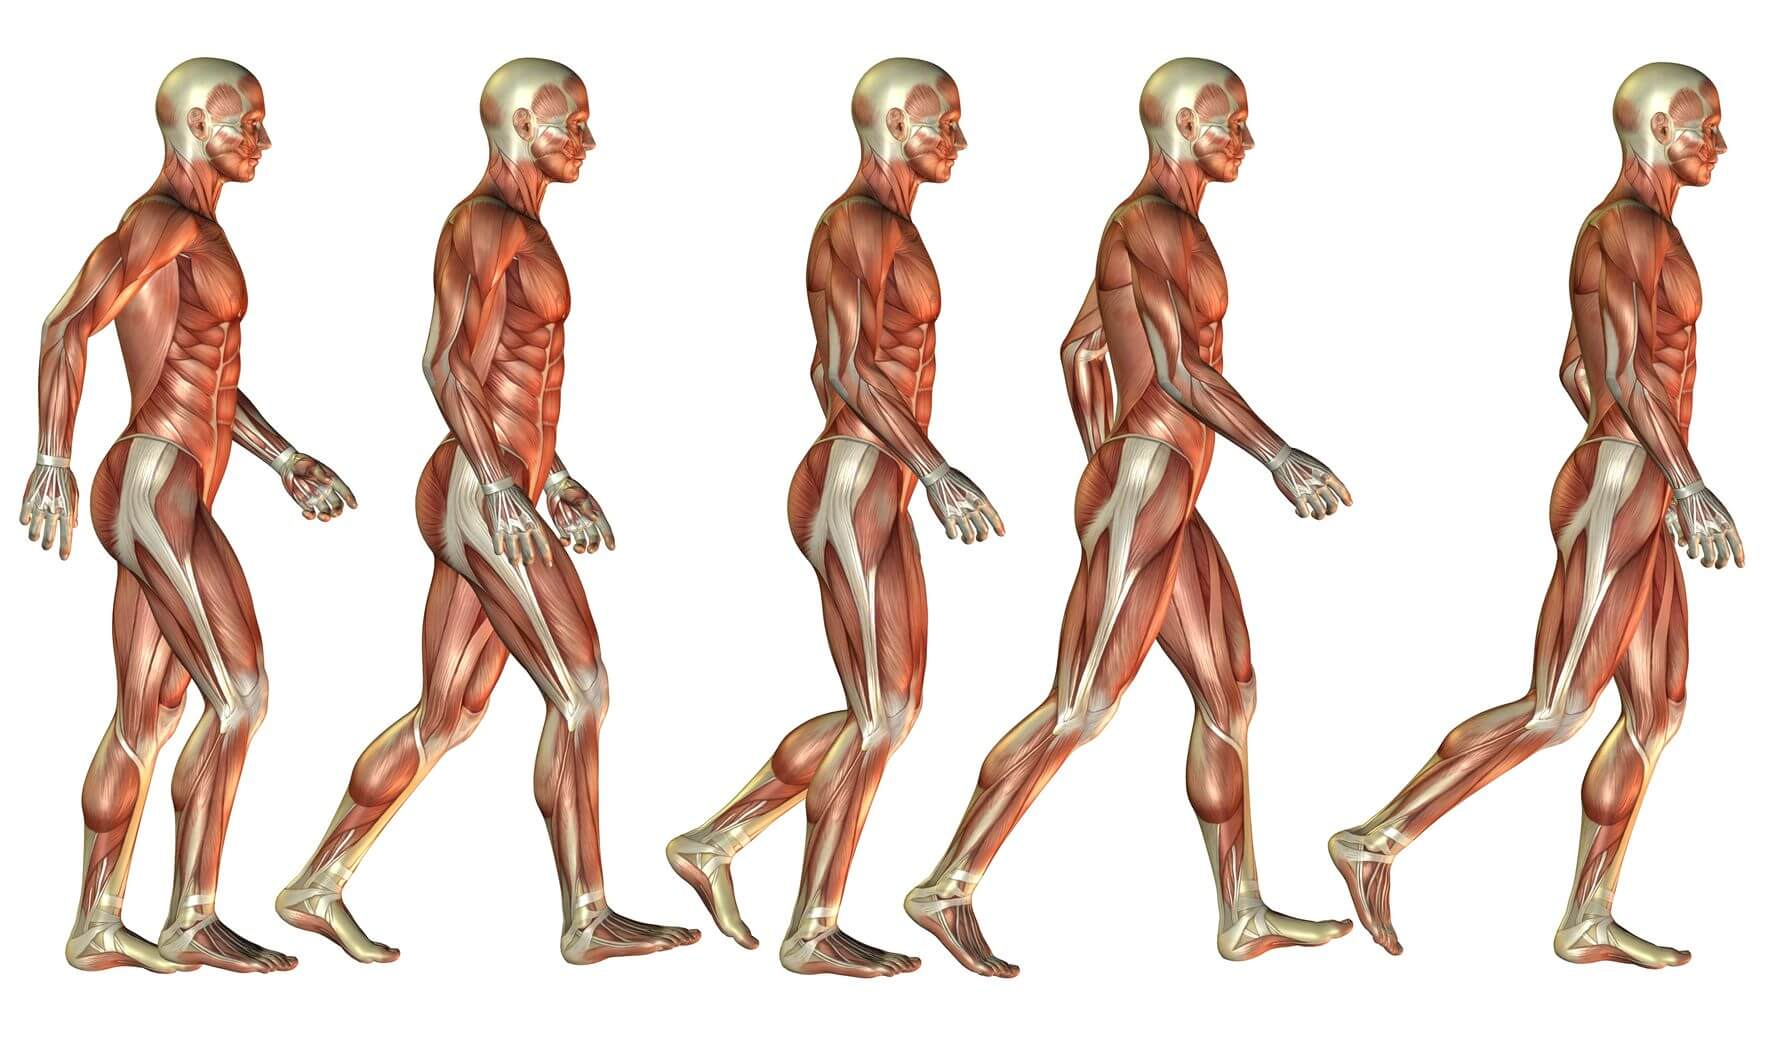 southfields physiotherapy gait analysis transformational zones small